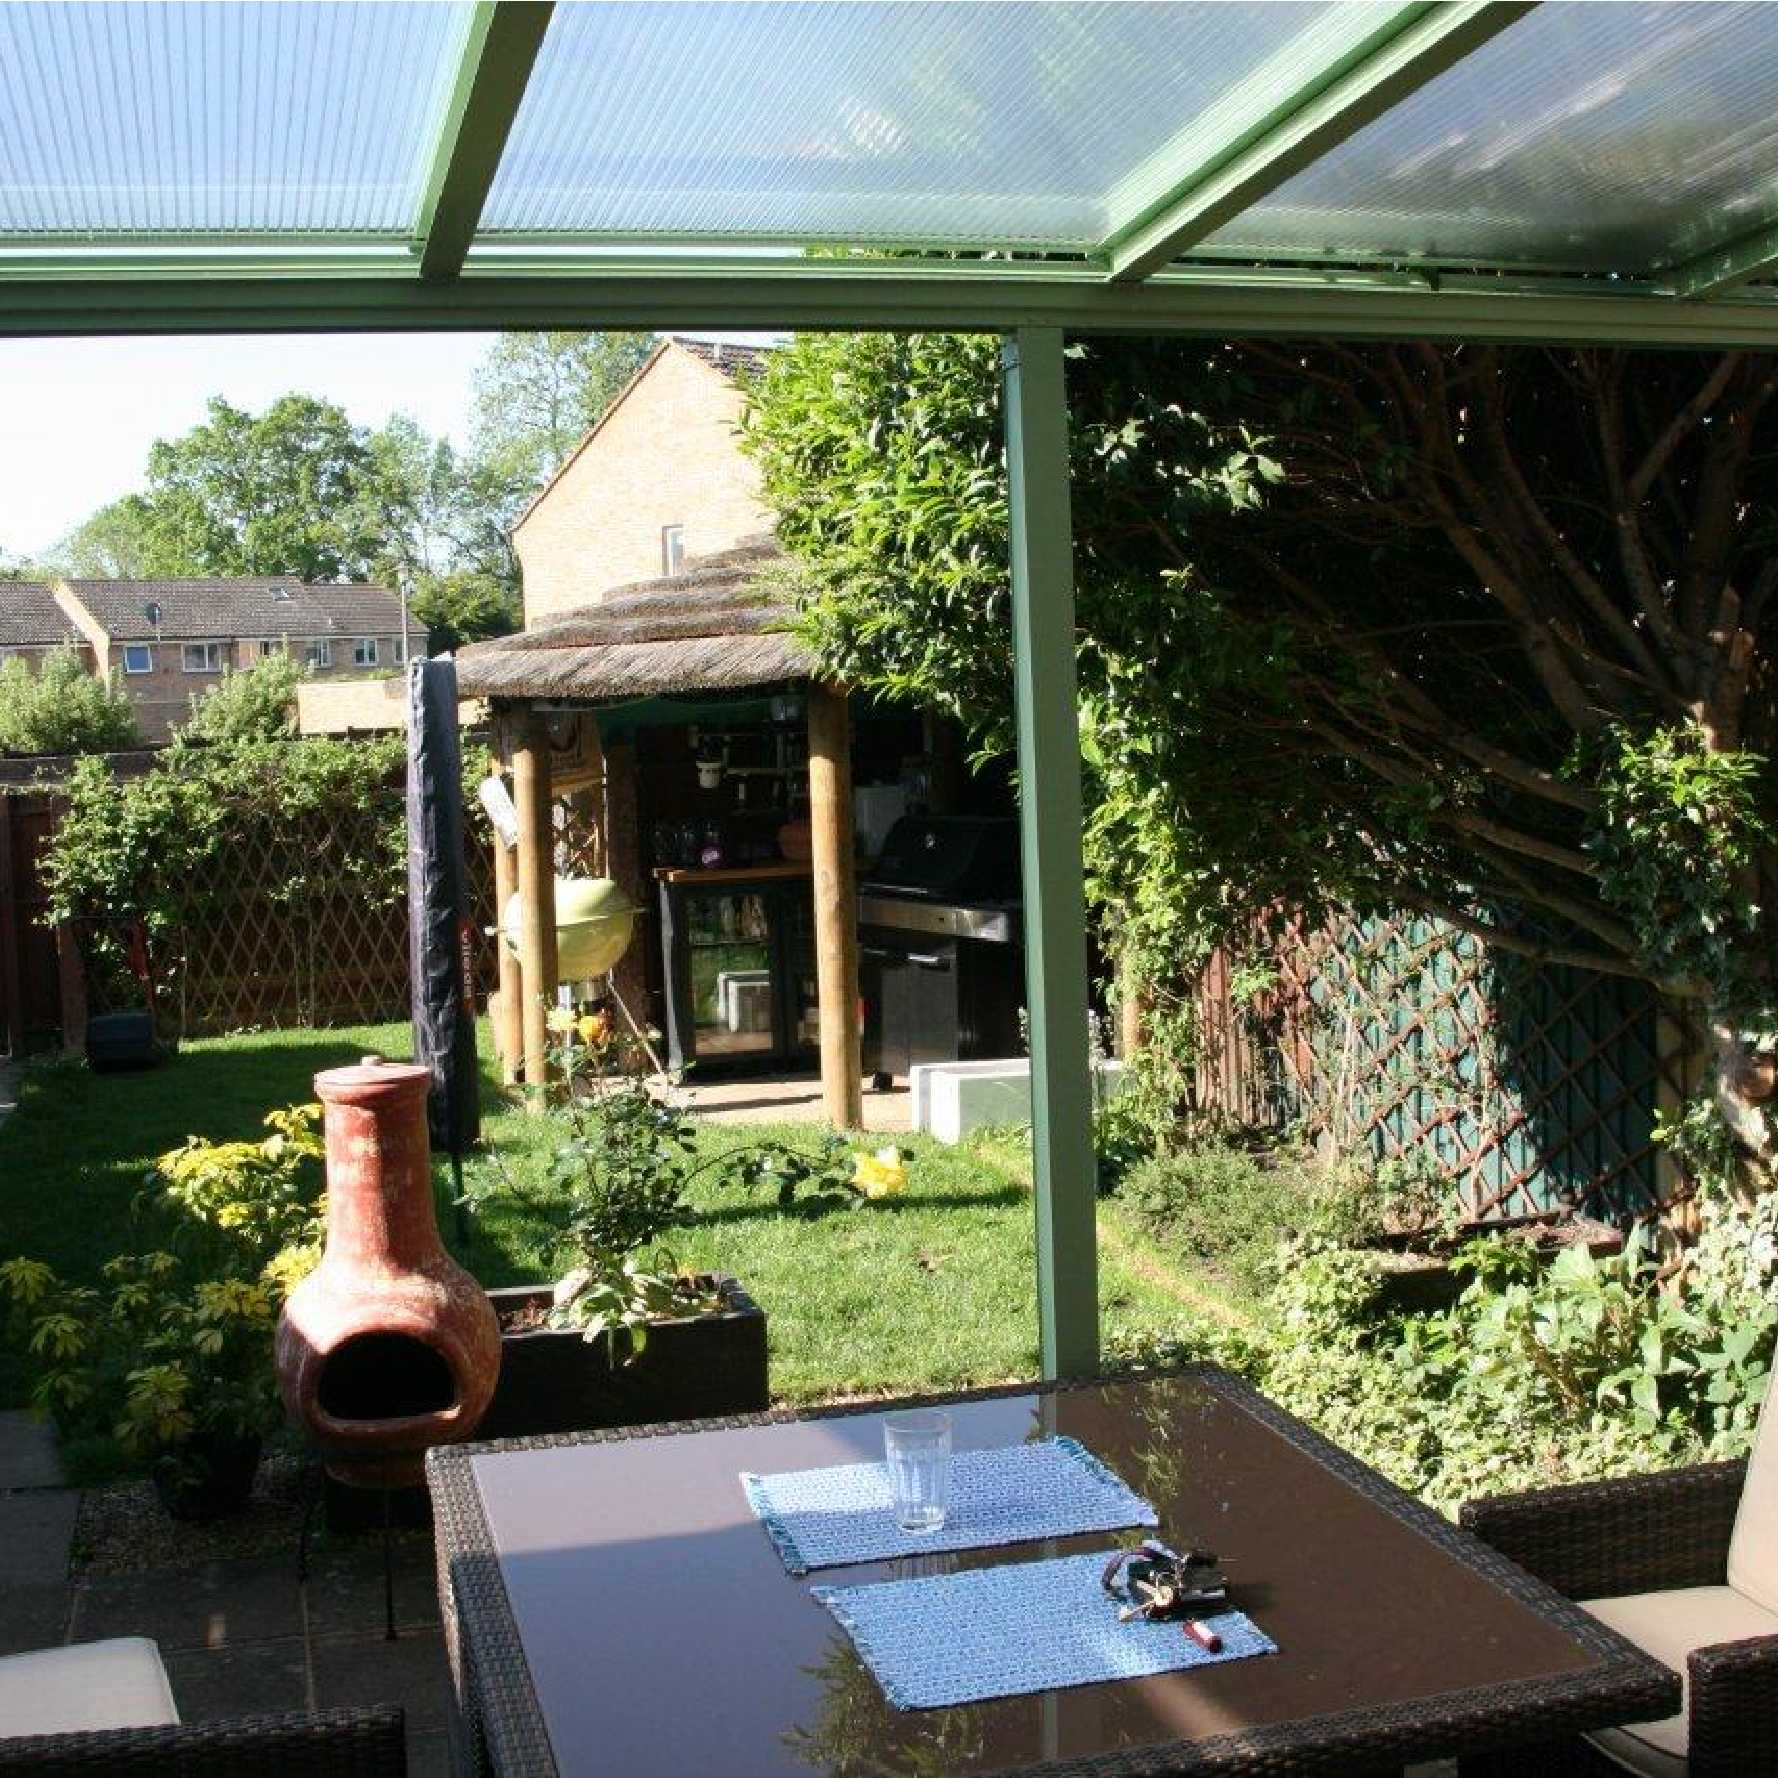 Affordable Omega Smart White Lean-To Canopy with 16mm Polycarbonate Glazing - 12.0m (W) x 2.5m (P), (5) Supporting Posts